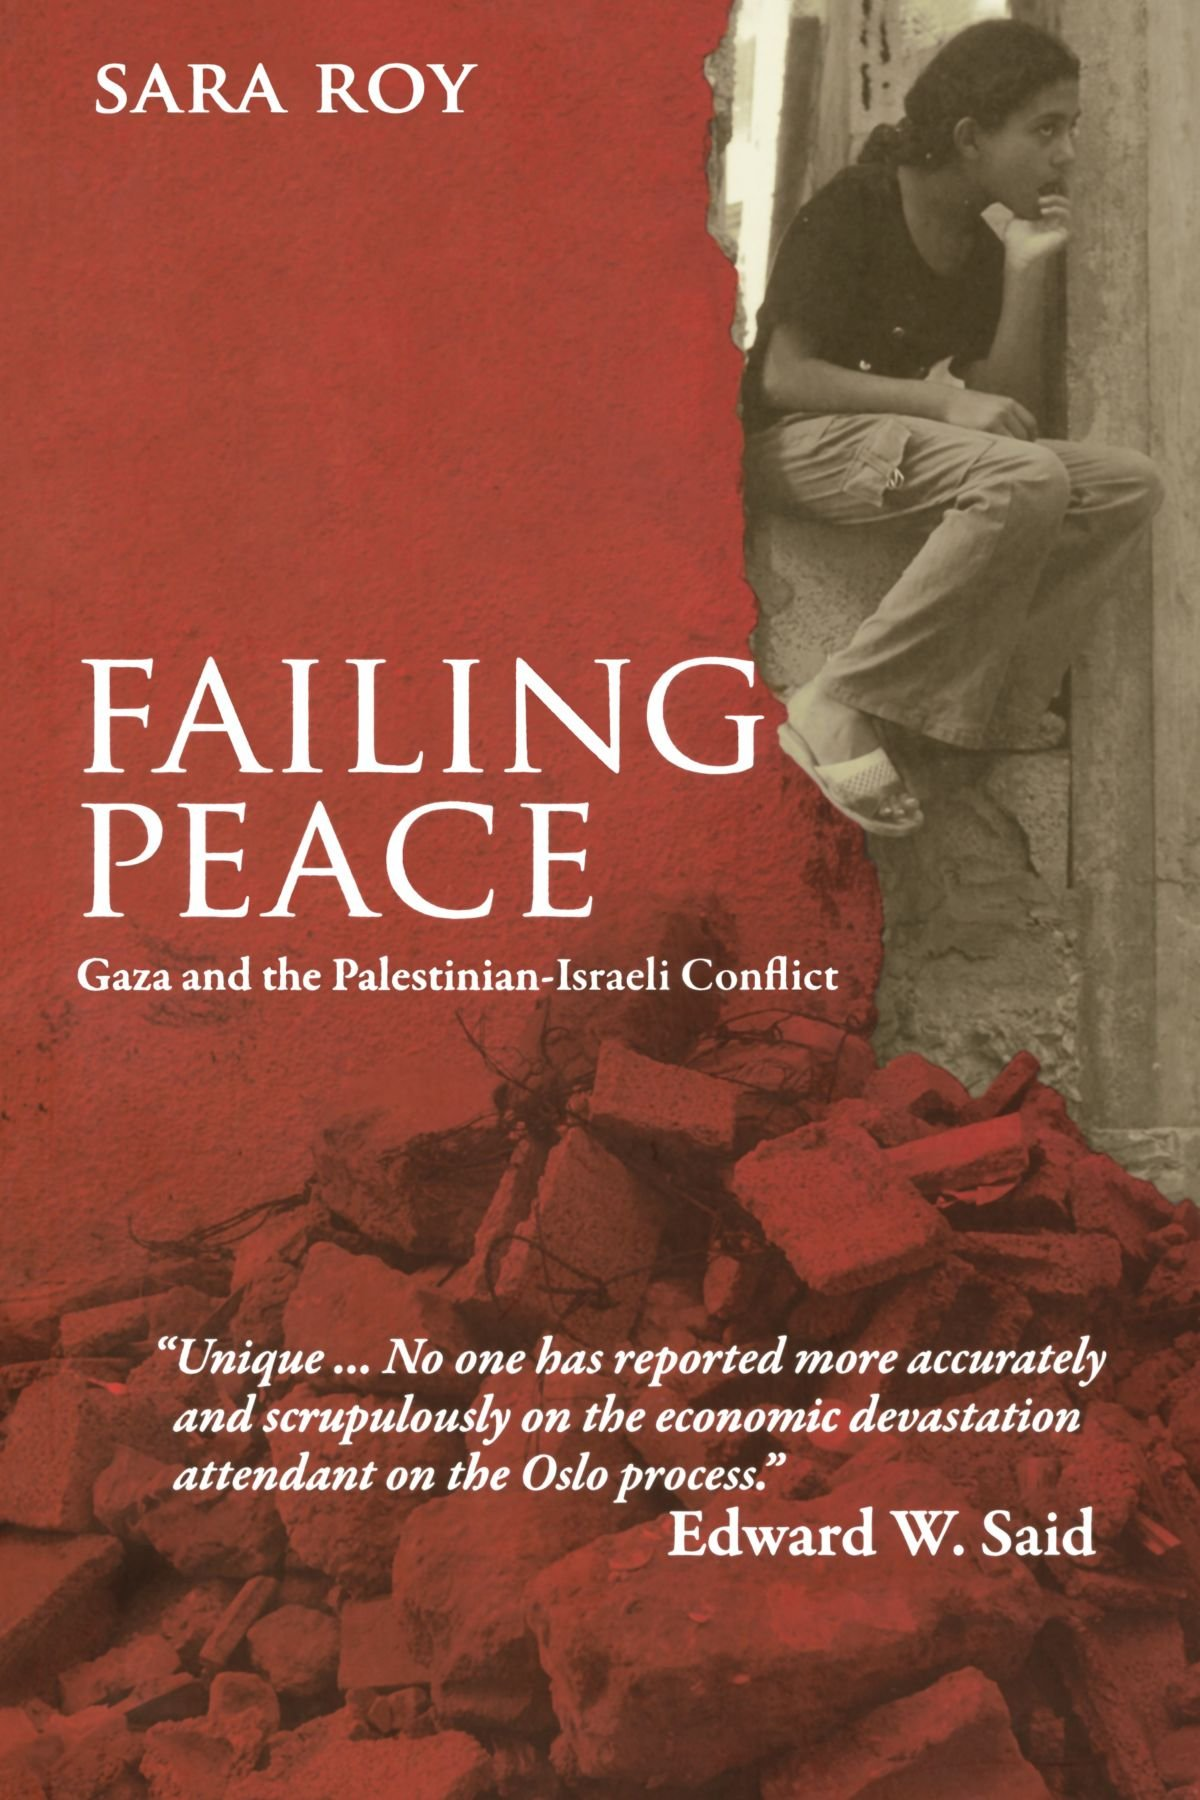 failing peace gaza and the palestinian i conflict  failing peace gaza and the palestinian i conflict co uk sara roy 9780745322346 books